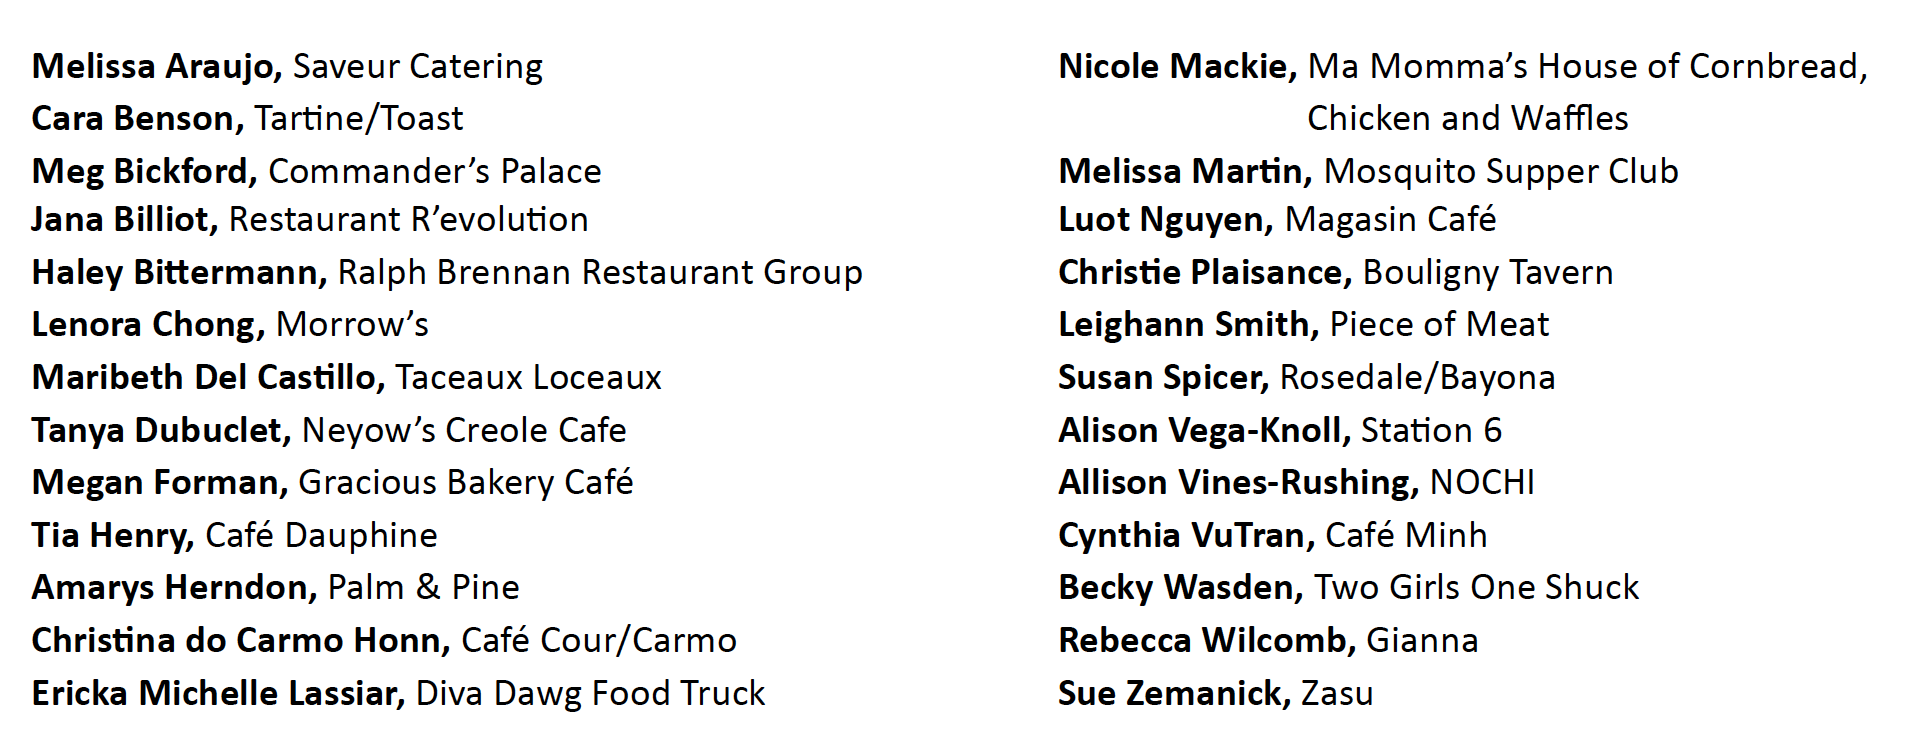 list of chefs names